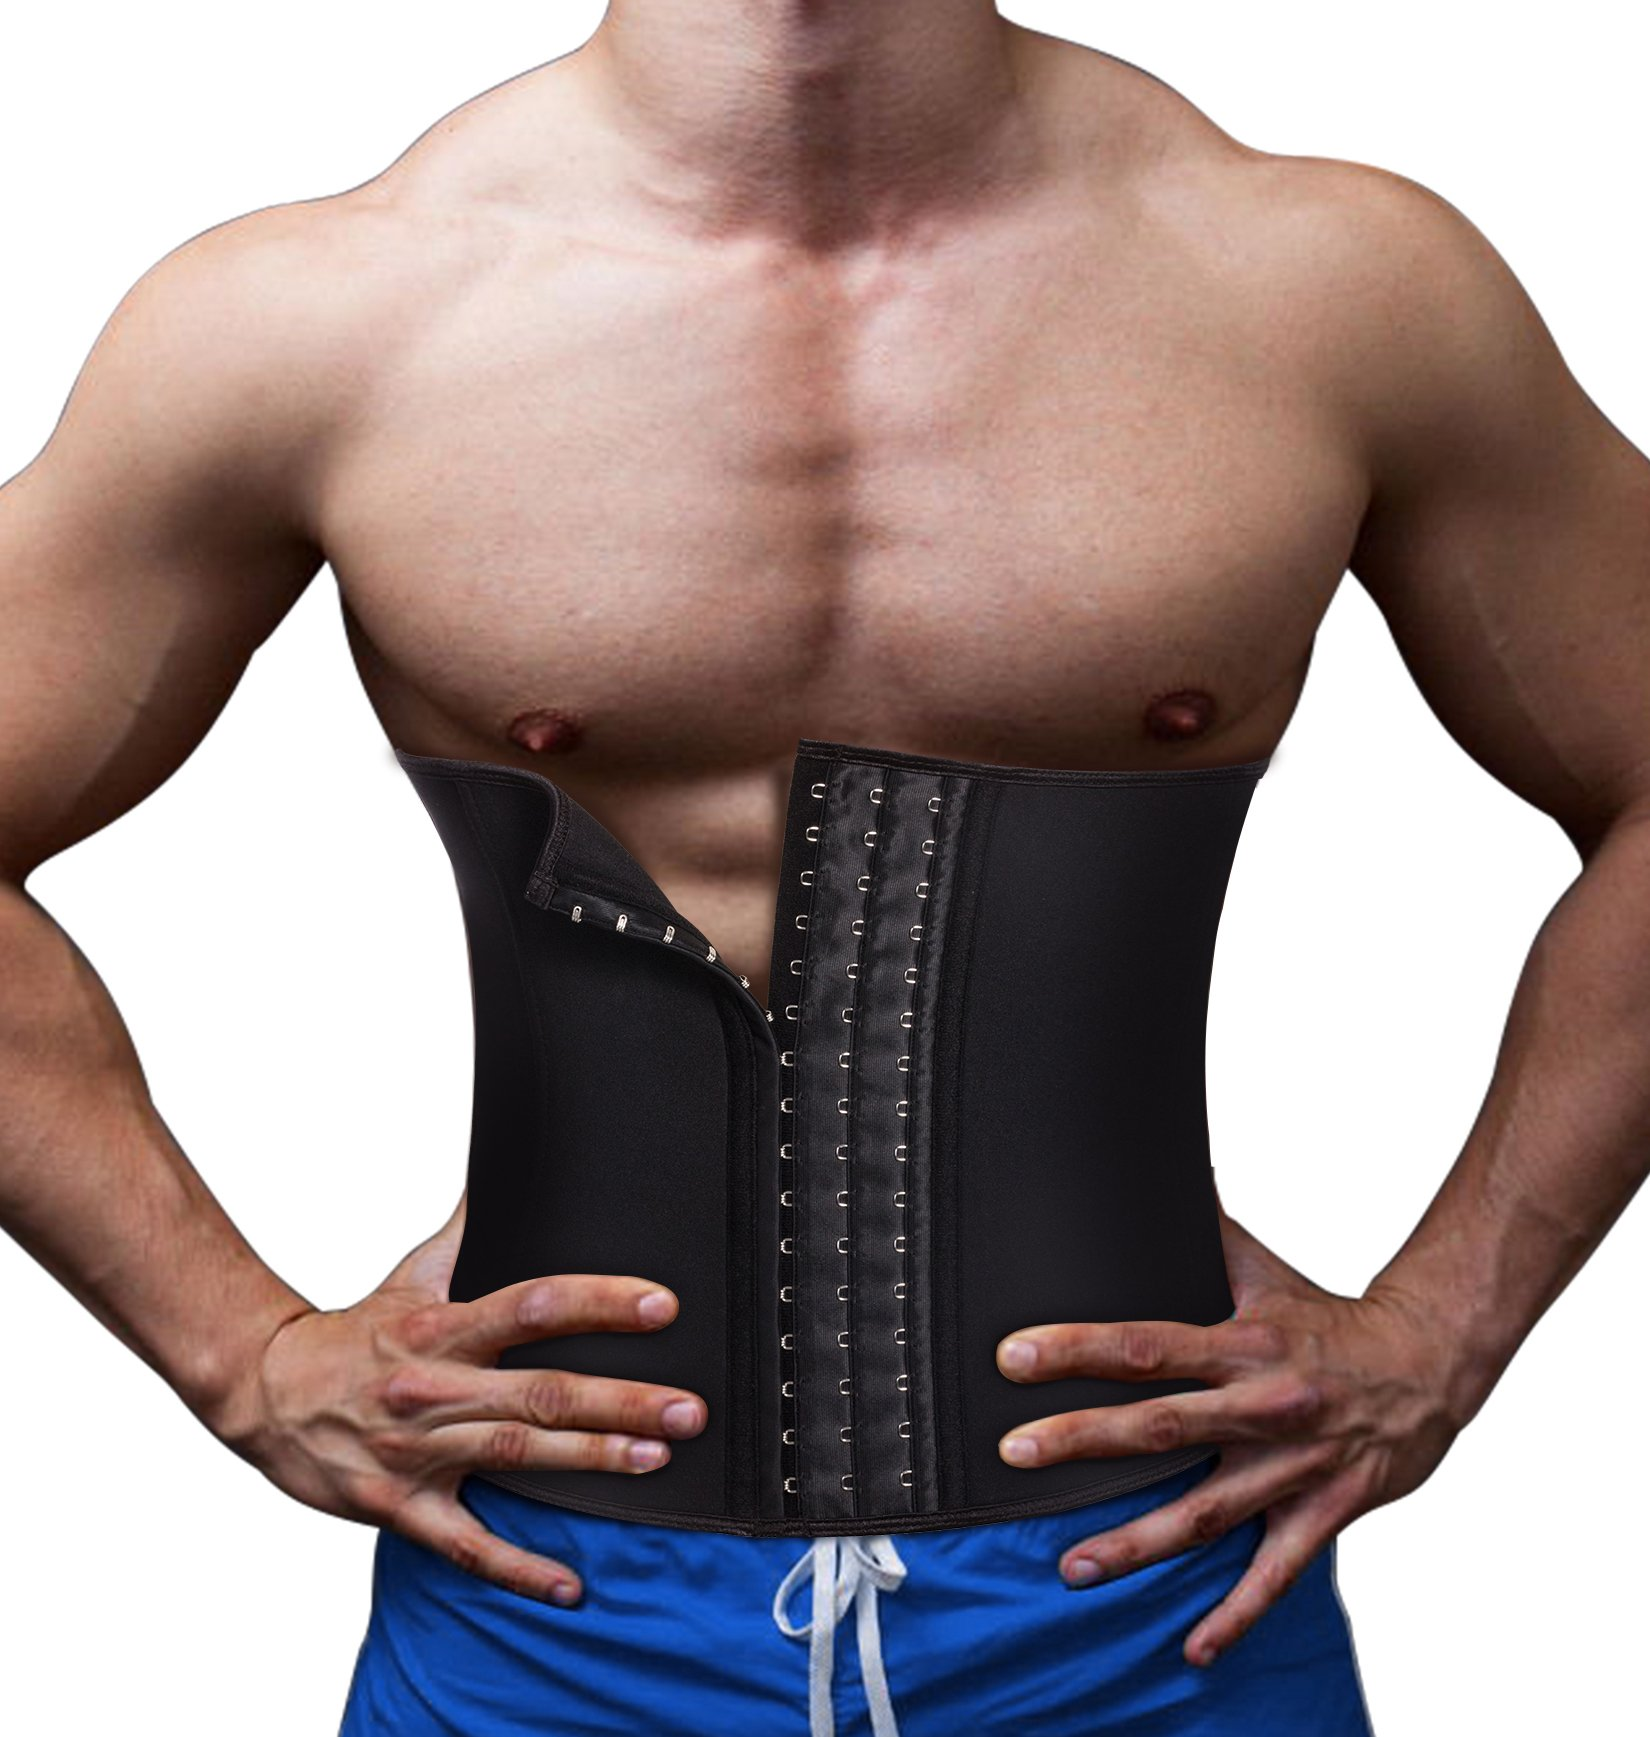 1ff7d777c3 TAILONG Men Waist Trainer Belt Workout for Body Weight Loss Fitness Fat  Burner Trimmer Band Back